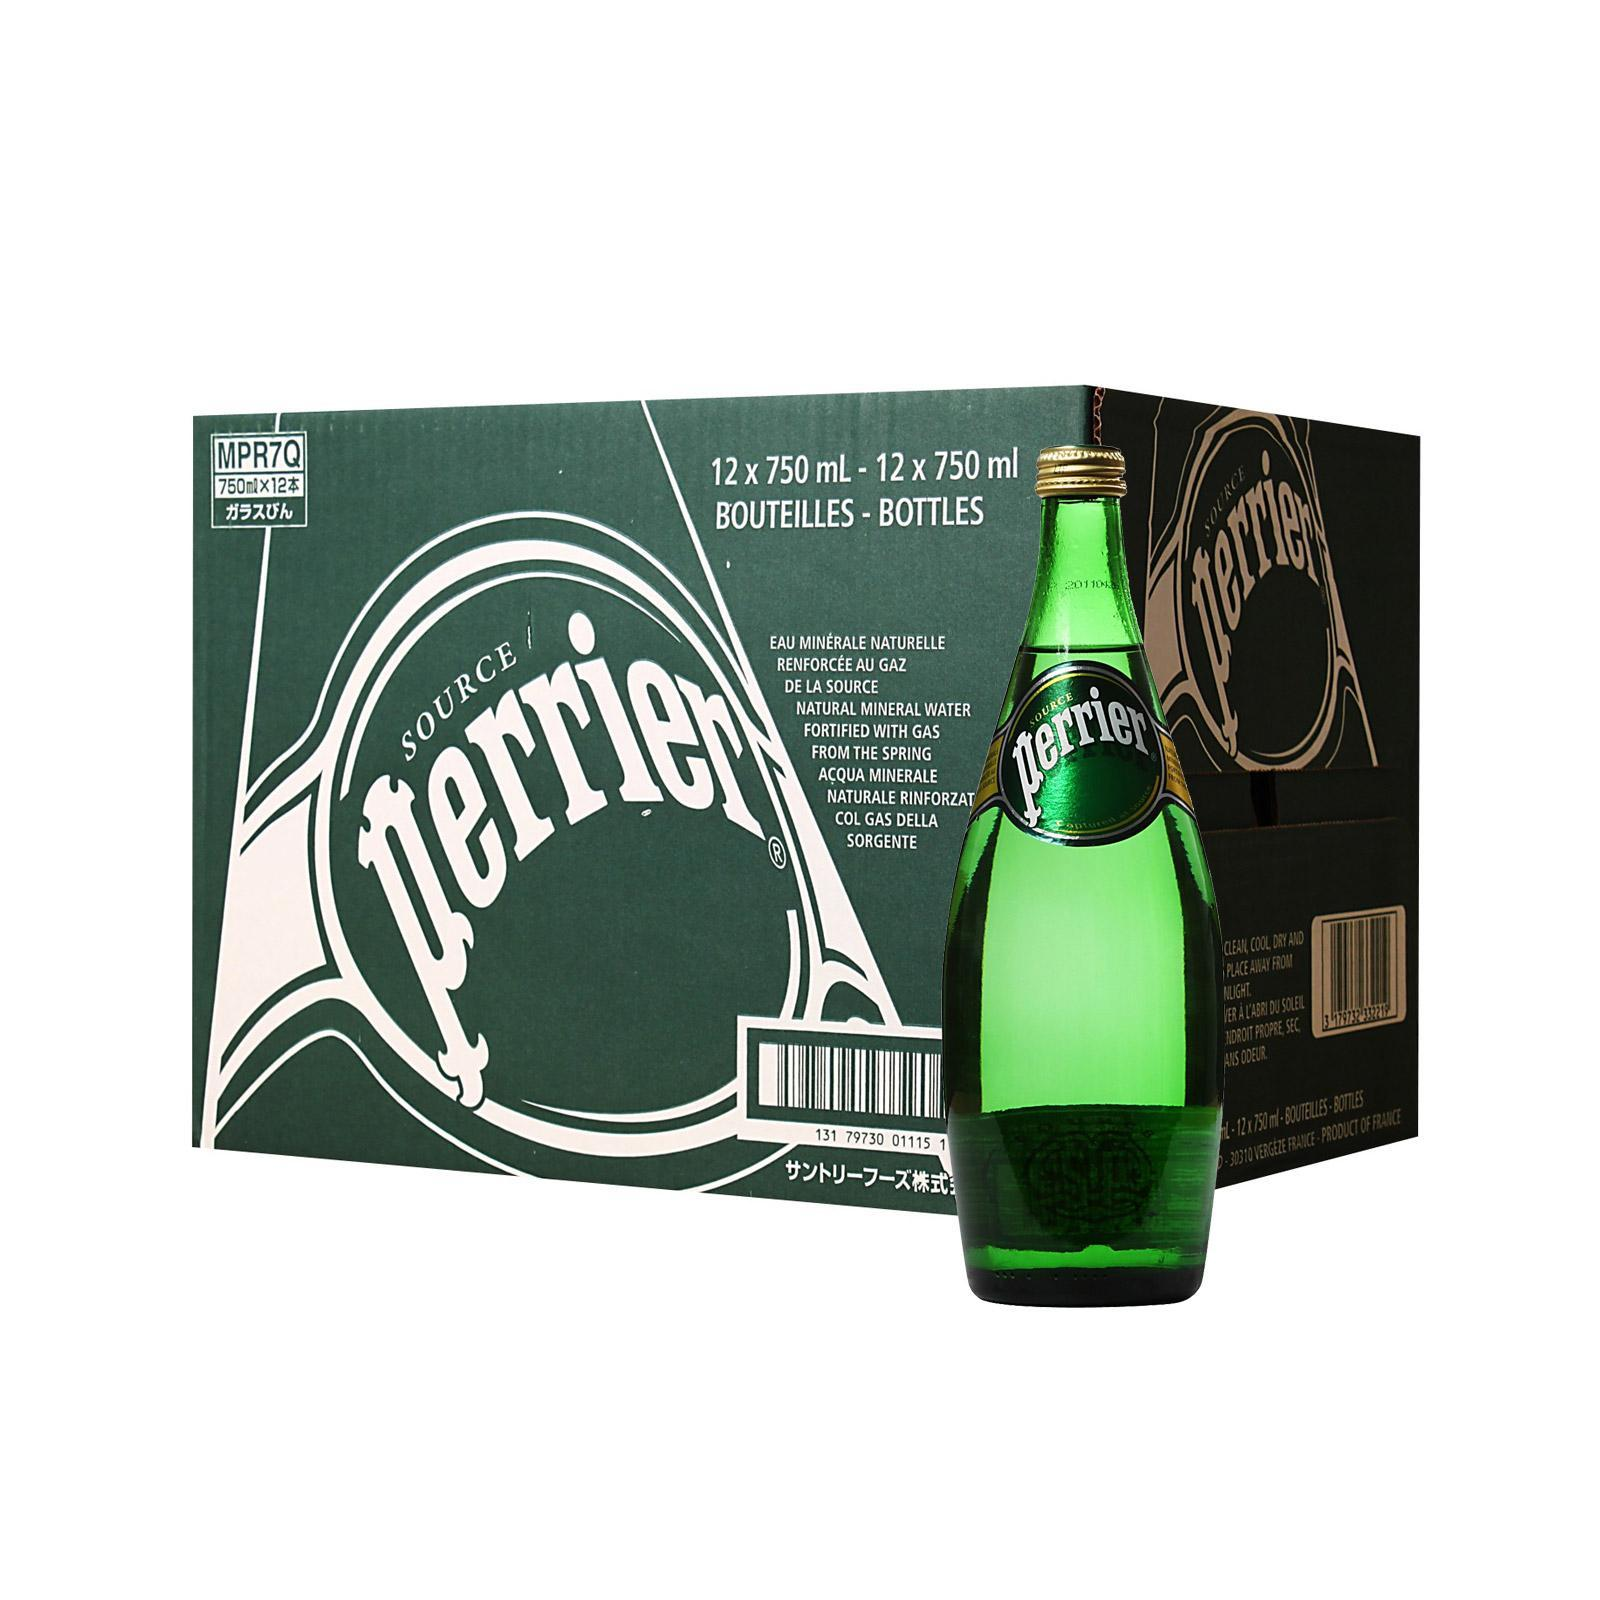 Perrier Sparkling Natural Mineral Water - Case